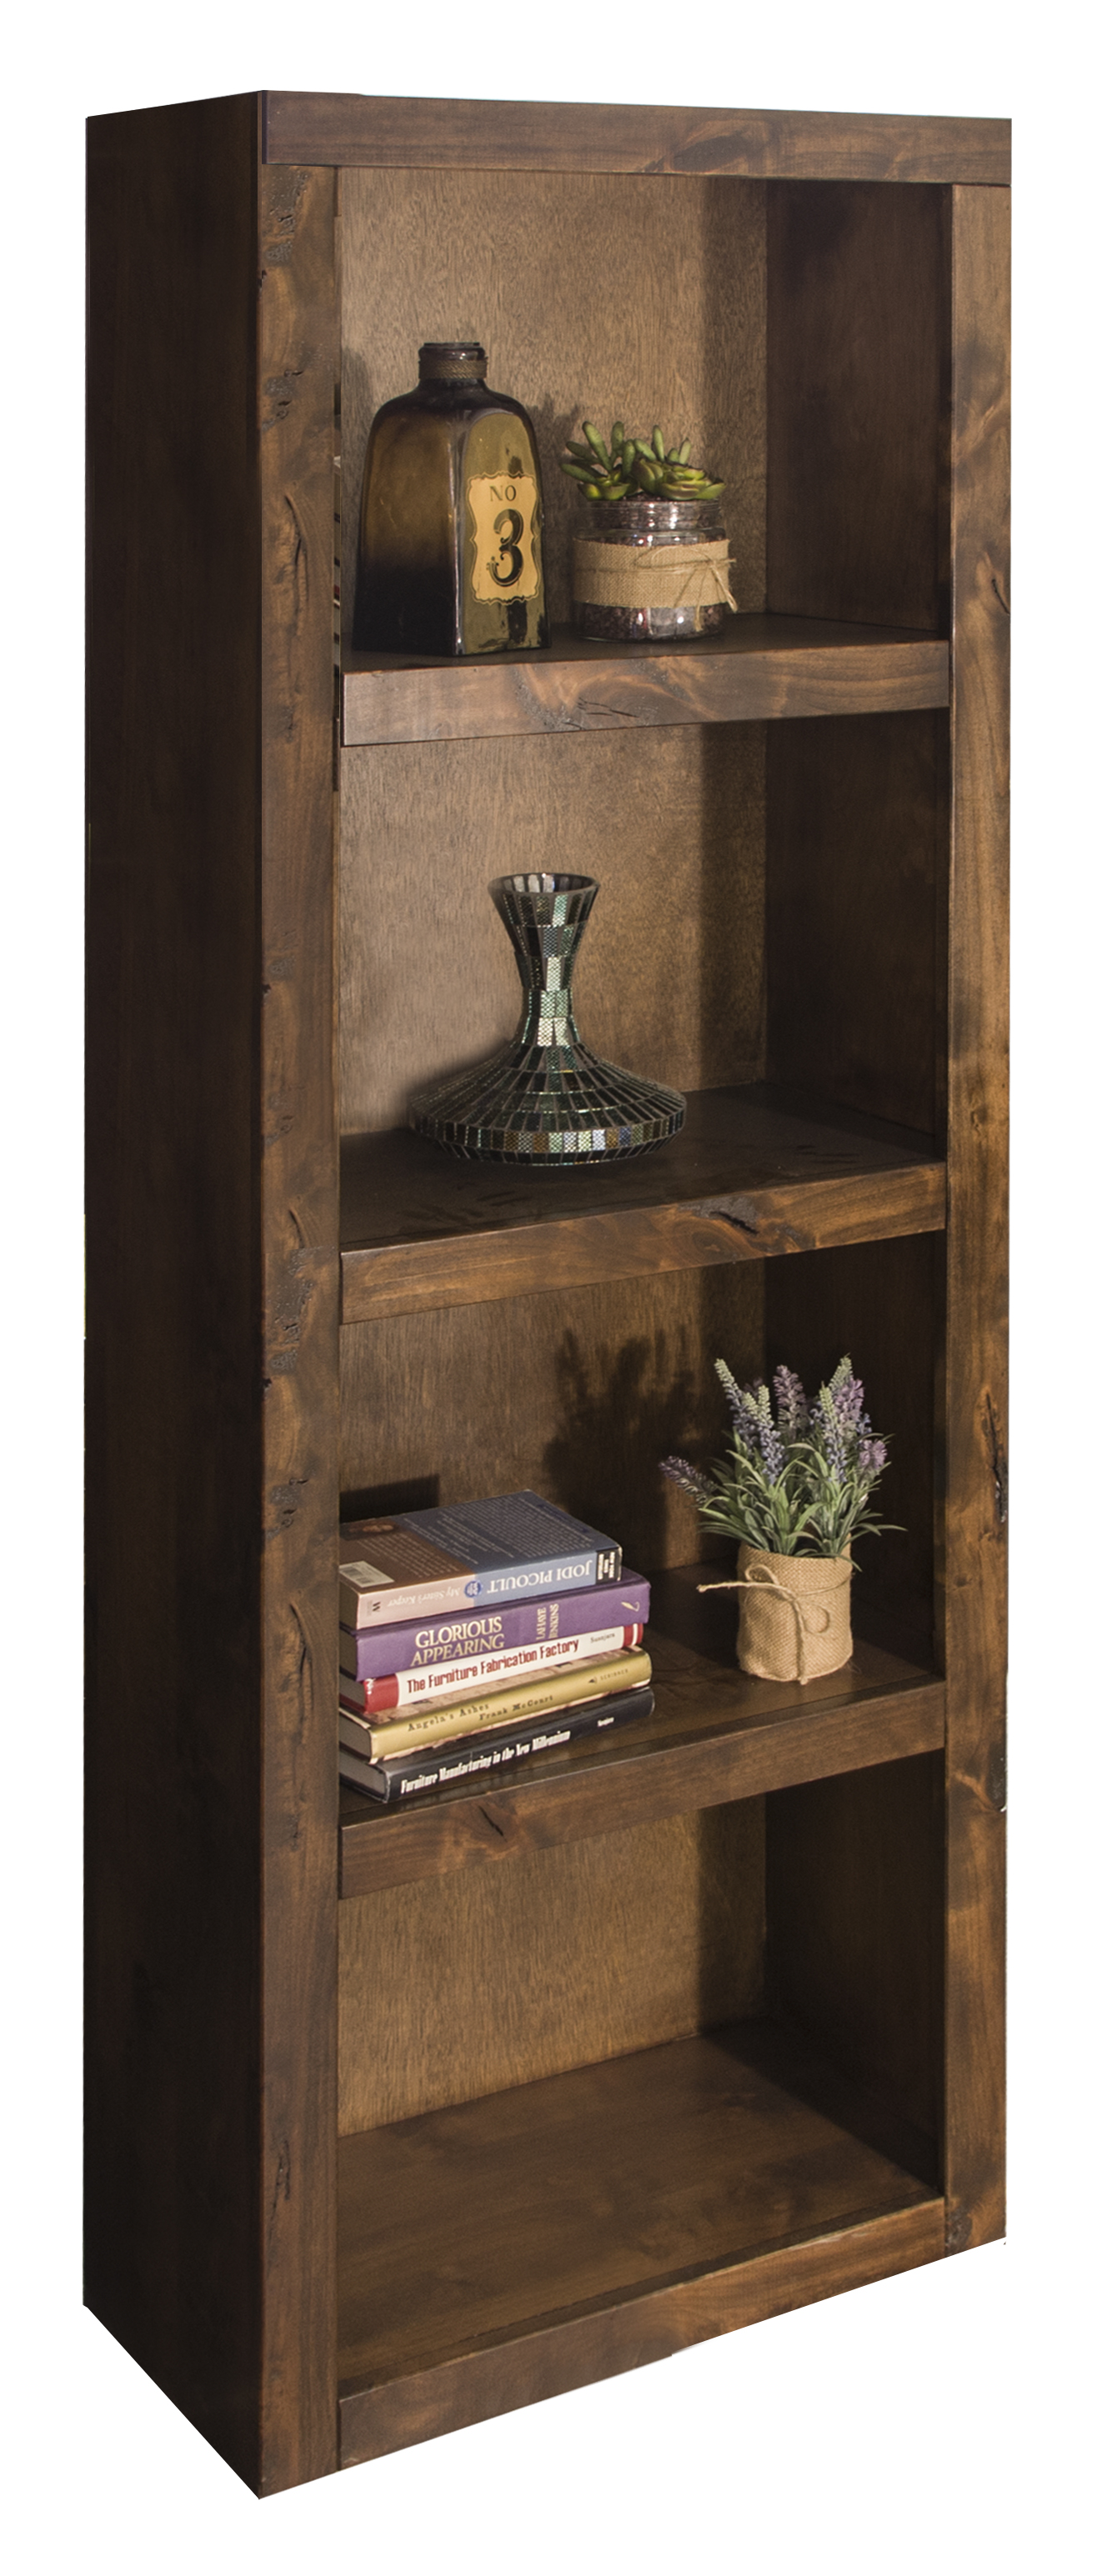 Legends Furniture Sausalito Collection Open Pier Cabinet - Item Number: SL3203-WKY